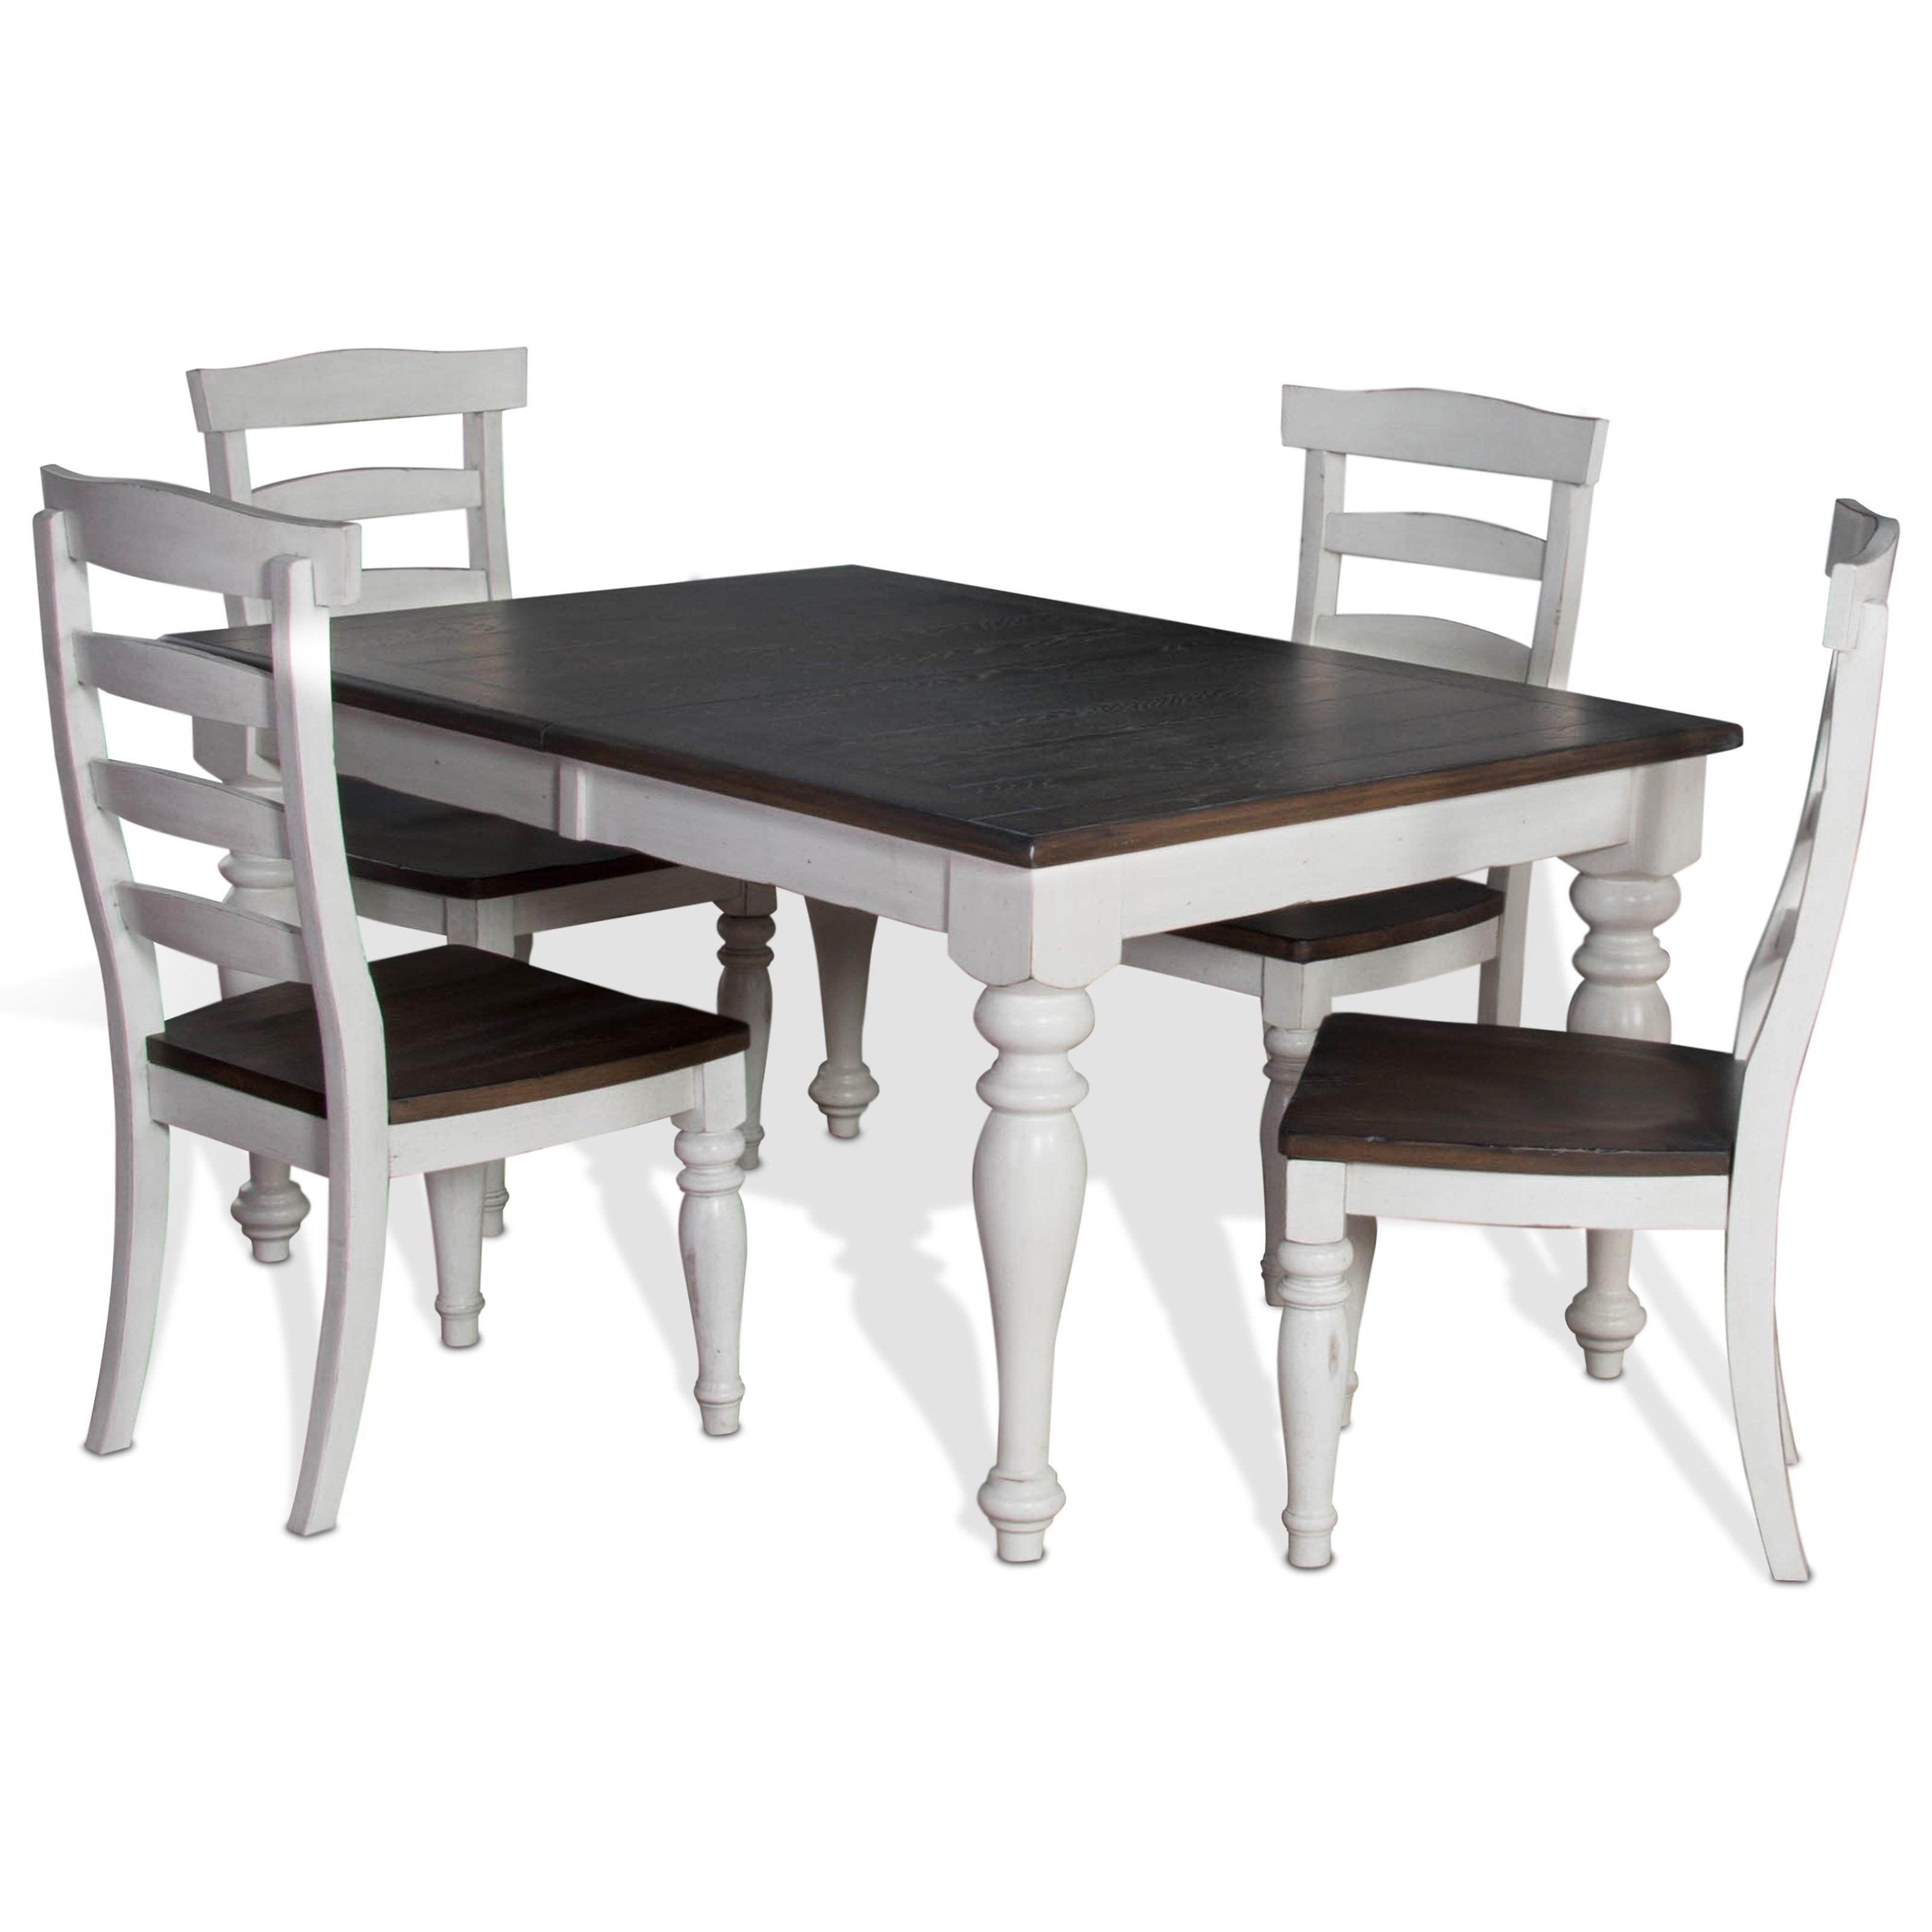 5 Piece Extension Dining Table Set With Ladderback Chairssunny For Newest Craftsman 7 Piece Rectangle Extension Dining Sets With Side Chairs (Image 1 of 20)